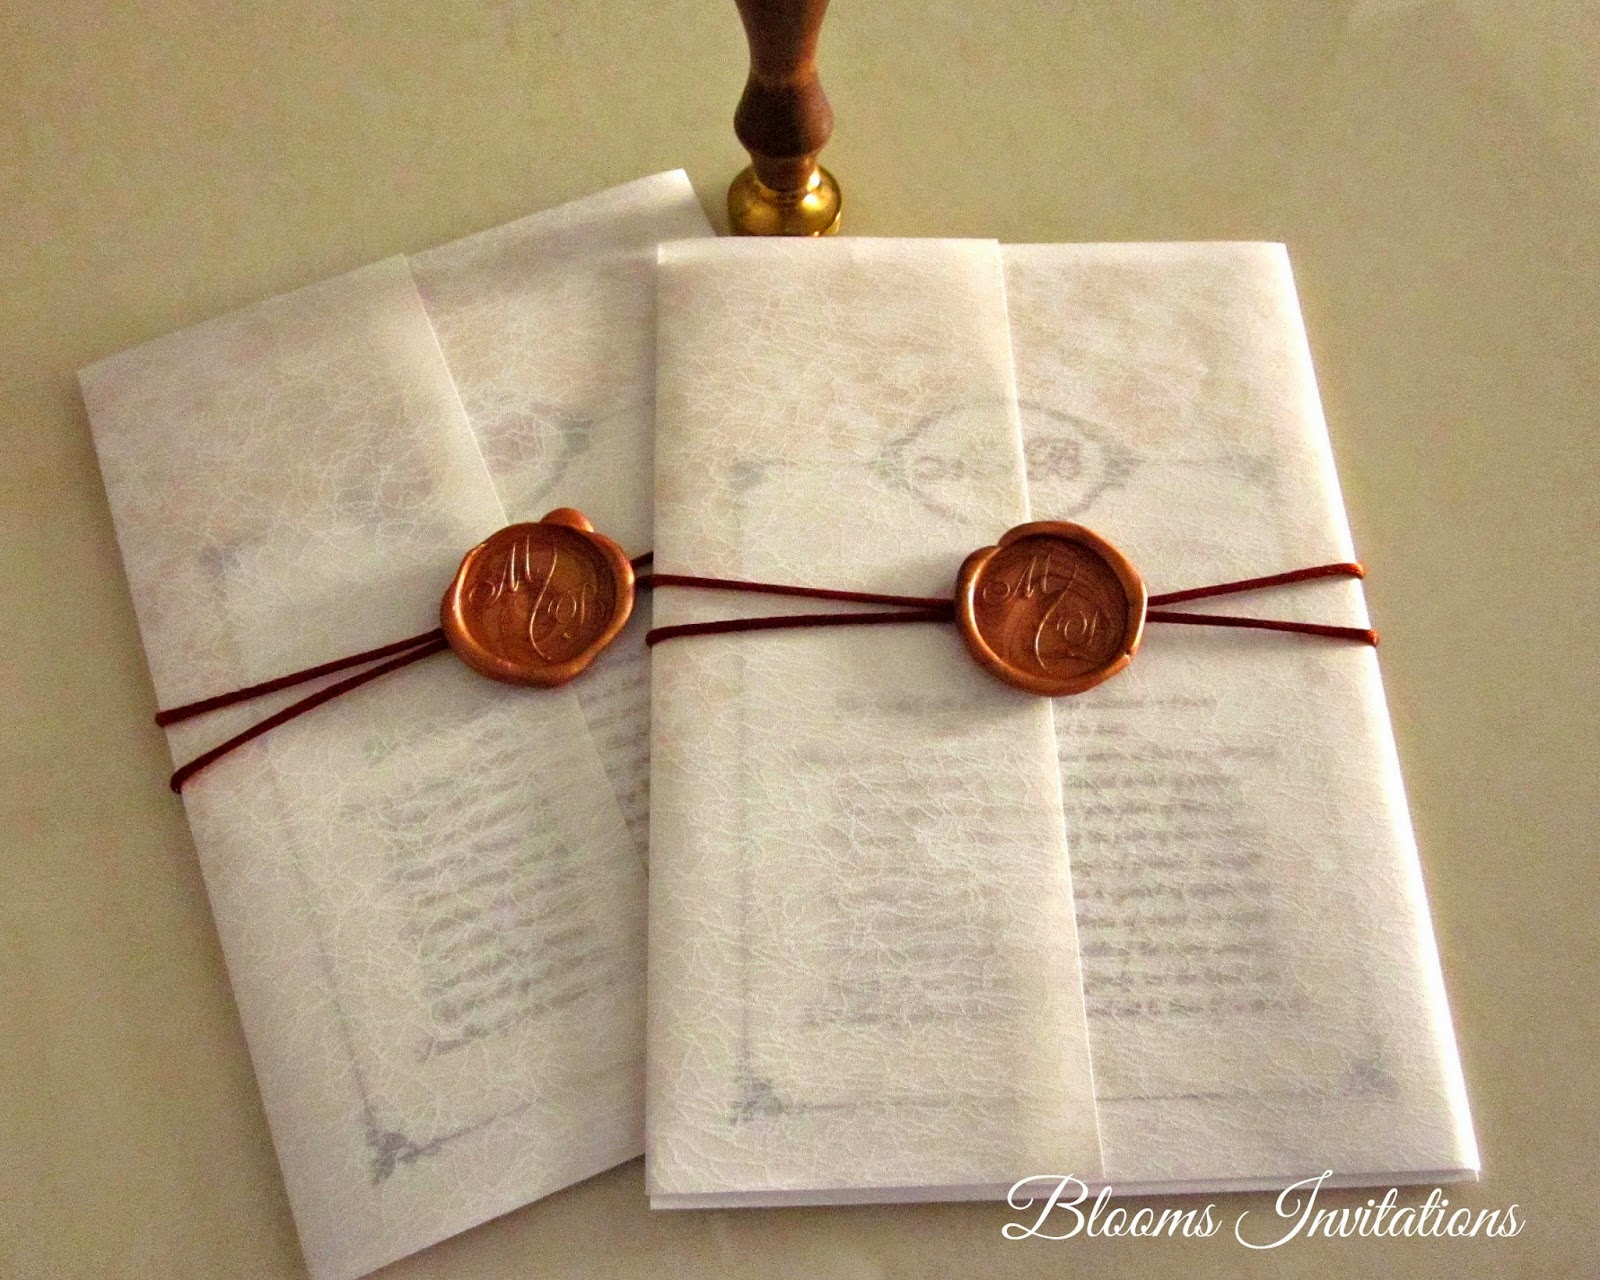 Wax Seals For Wedding Invitations: Wax Seal Wedding Invitation. Cards